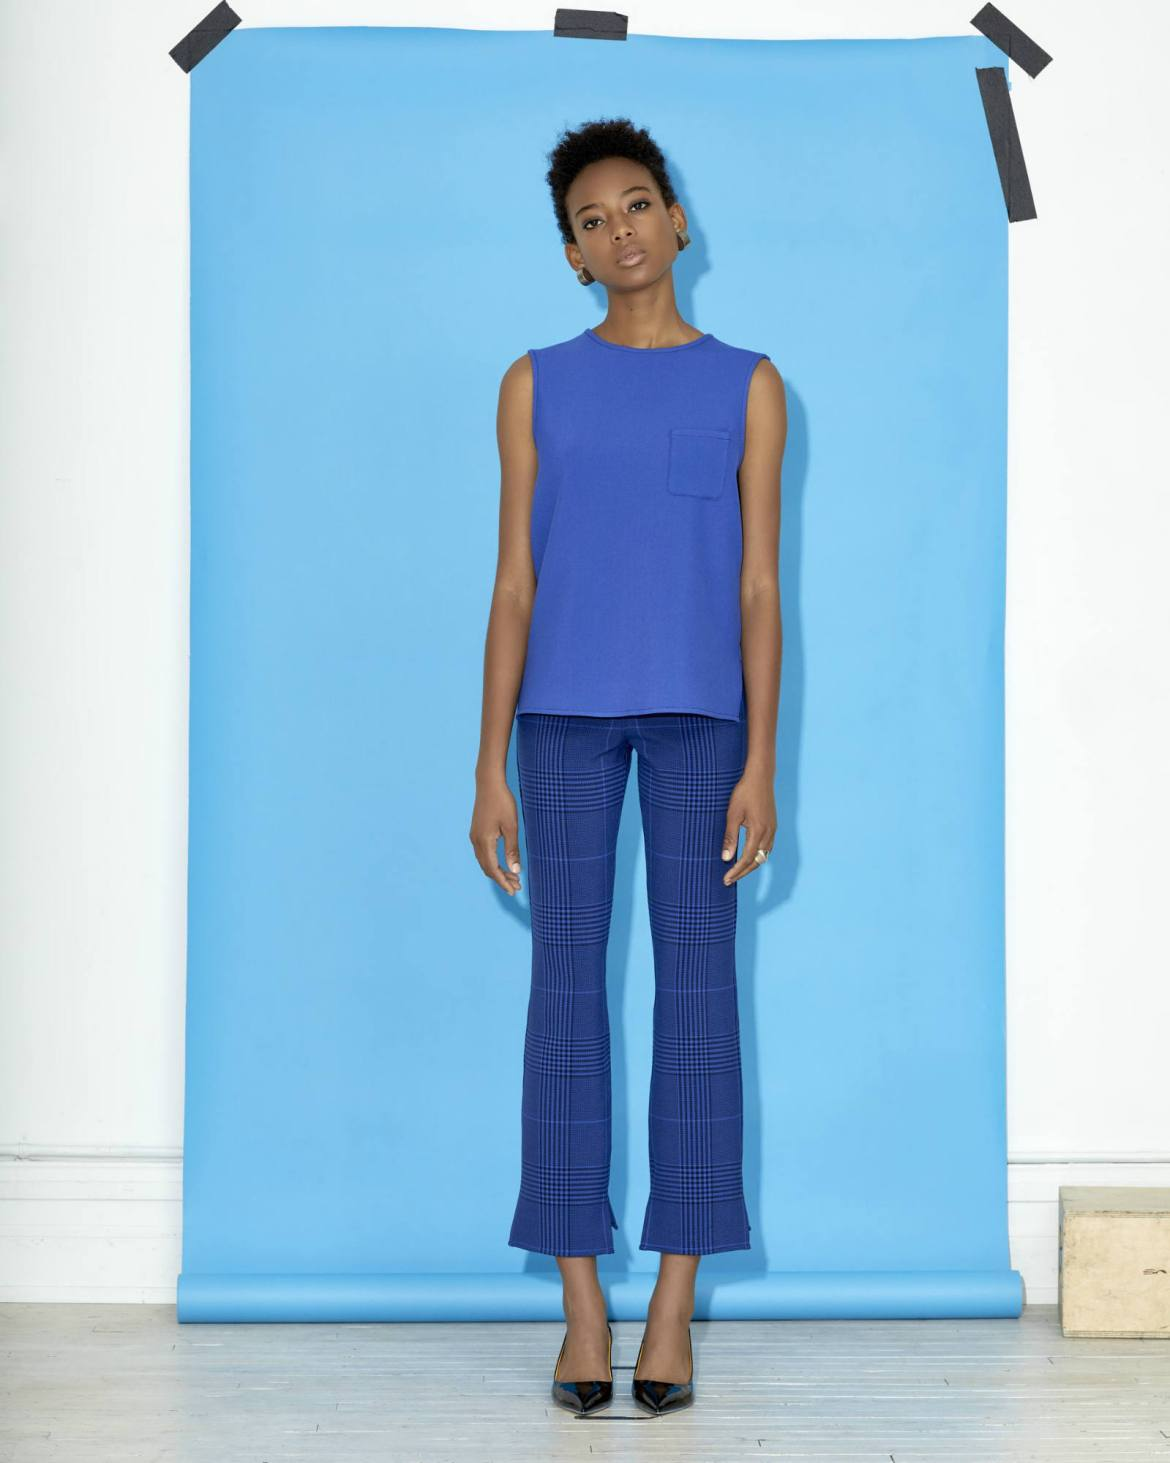 Argent Reversible Sleeveless Top in Electric Blue Navy. Reversible Trousers, meet the Reversible Sleeveless Top—a sleeveless, crew neck with side seam stepped-hem detailing. It's longer in the front than in the back. A top with a patch pocket and bright topstitching all around. Made from medium-heavy weight bonded fabric - same as the dress, trousers, and blazer. So, whether you're in the mood to match or you just want a killer top, you'll wear this tank out. Literally.